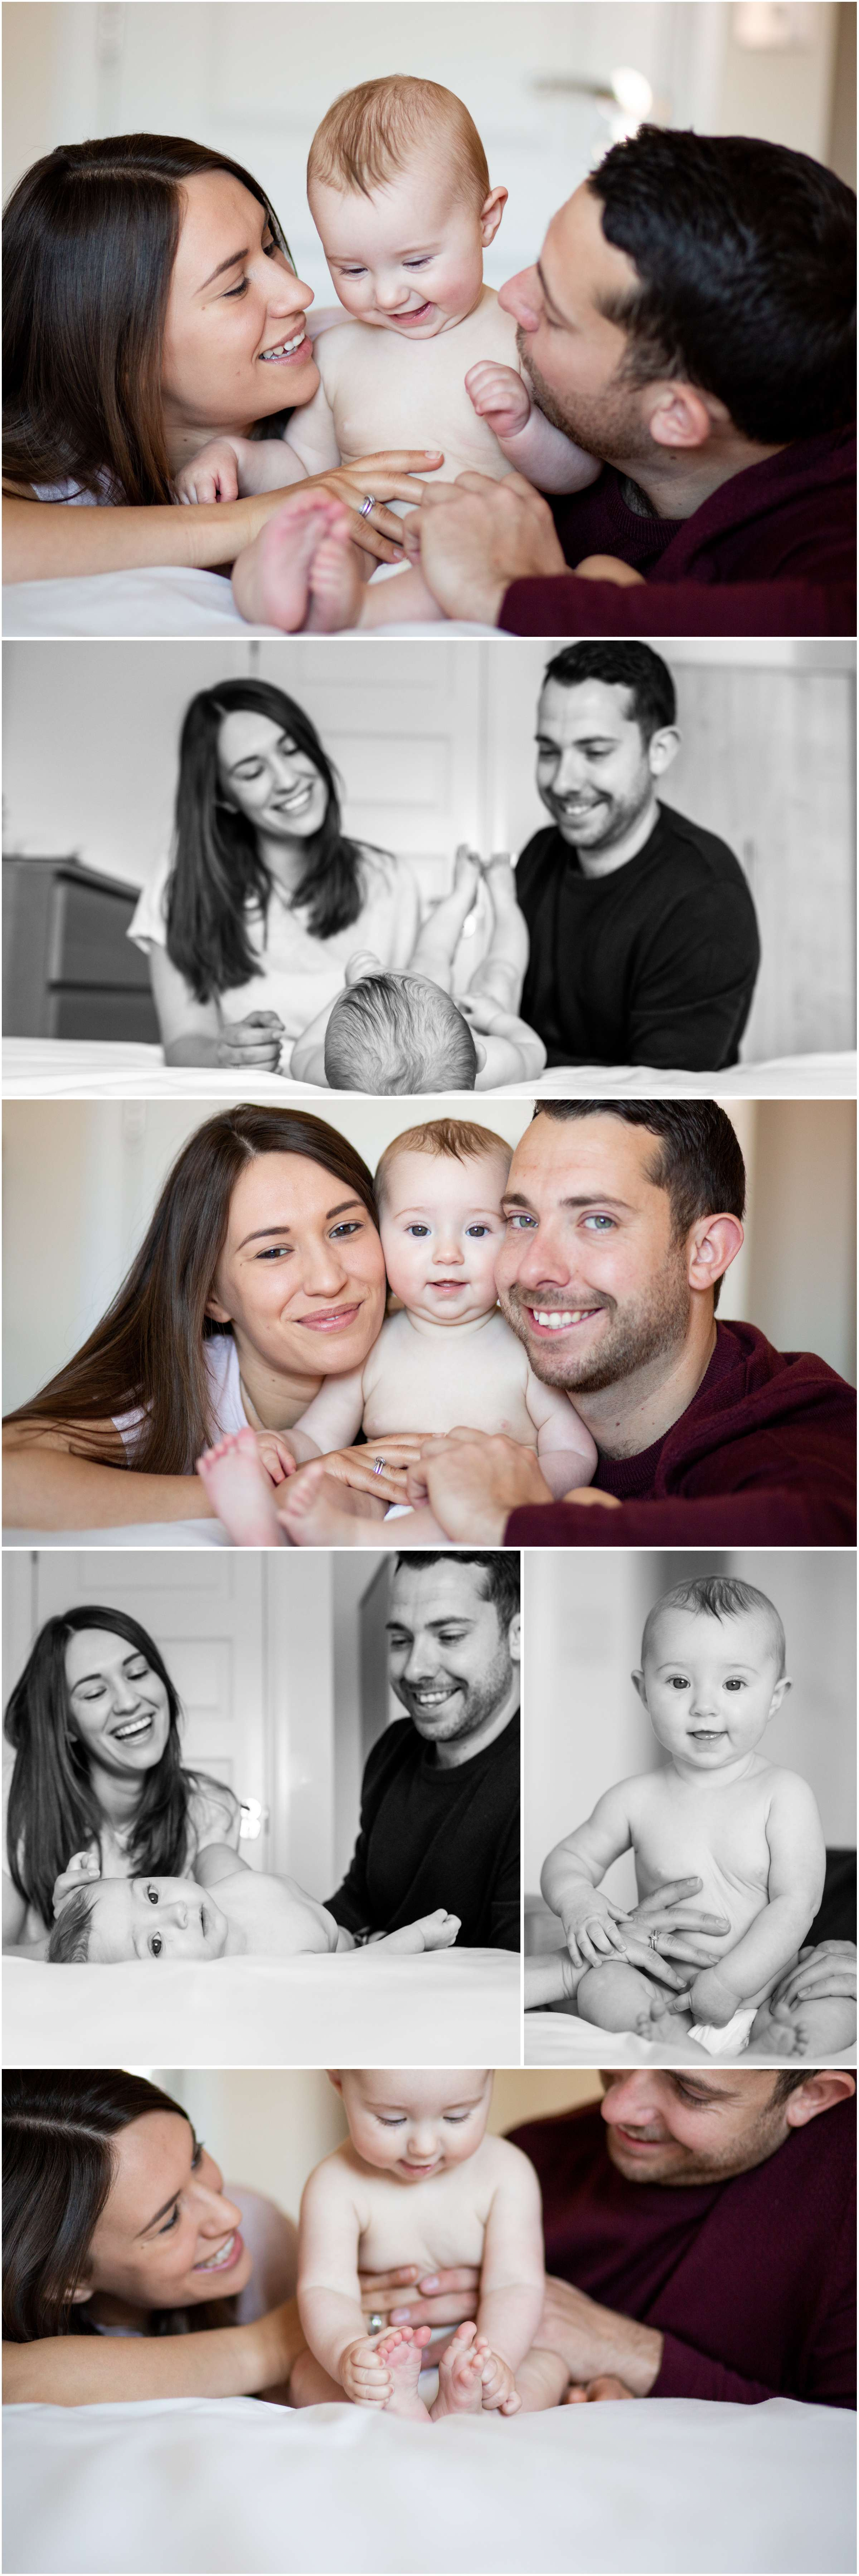 A collection of family lifestyle portrait photos taken at home